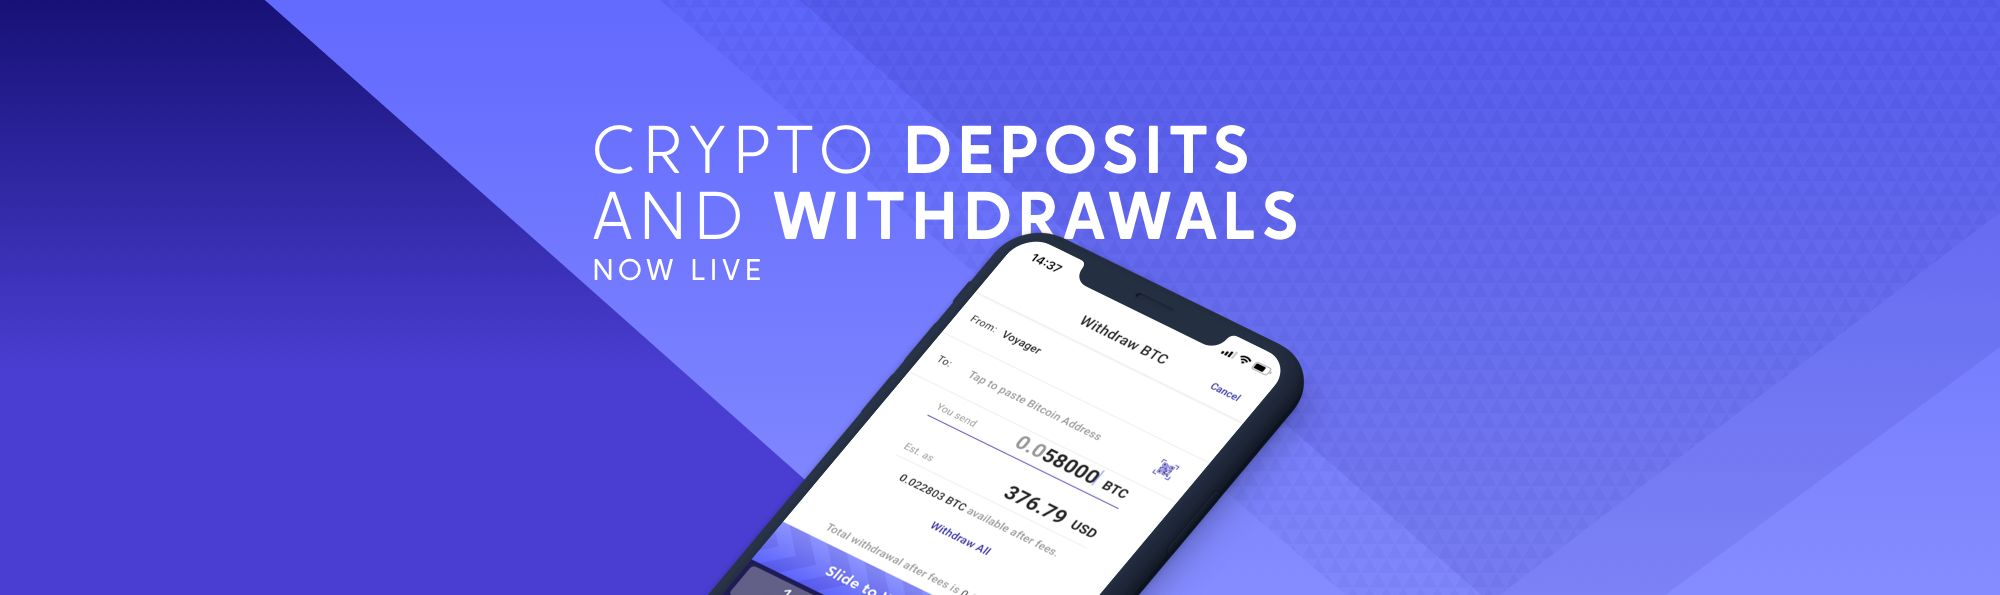 Crypto Deposits And Withdrawals Now Live